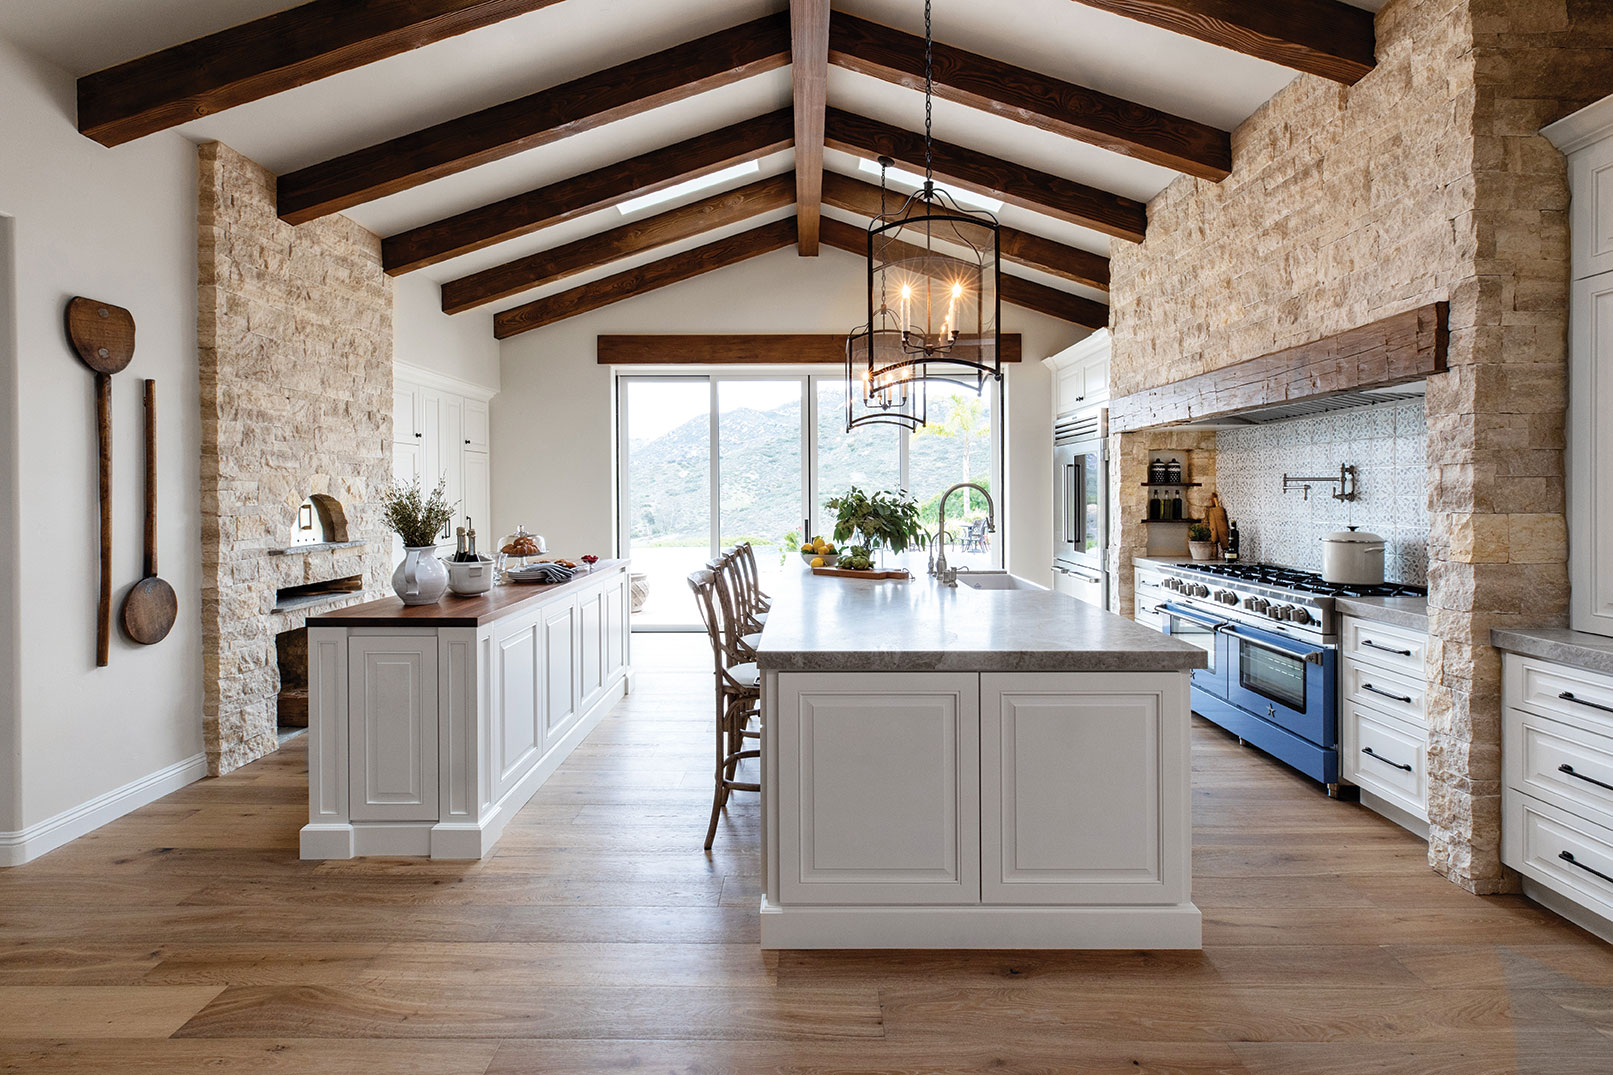 european kitchen designed by kristin kostamo-mcneil anne rae design san diego